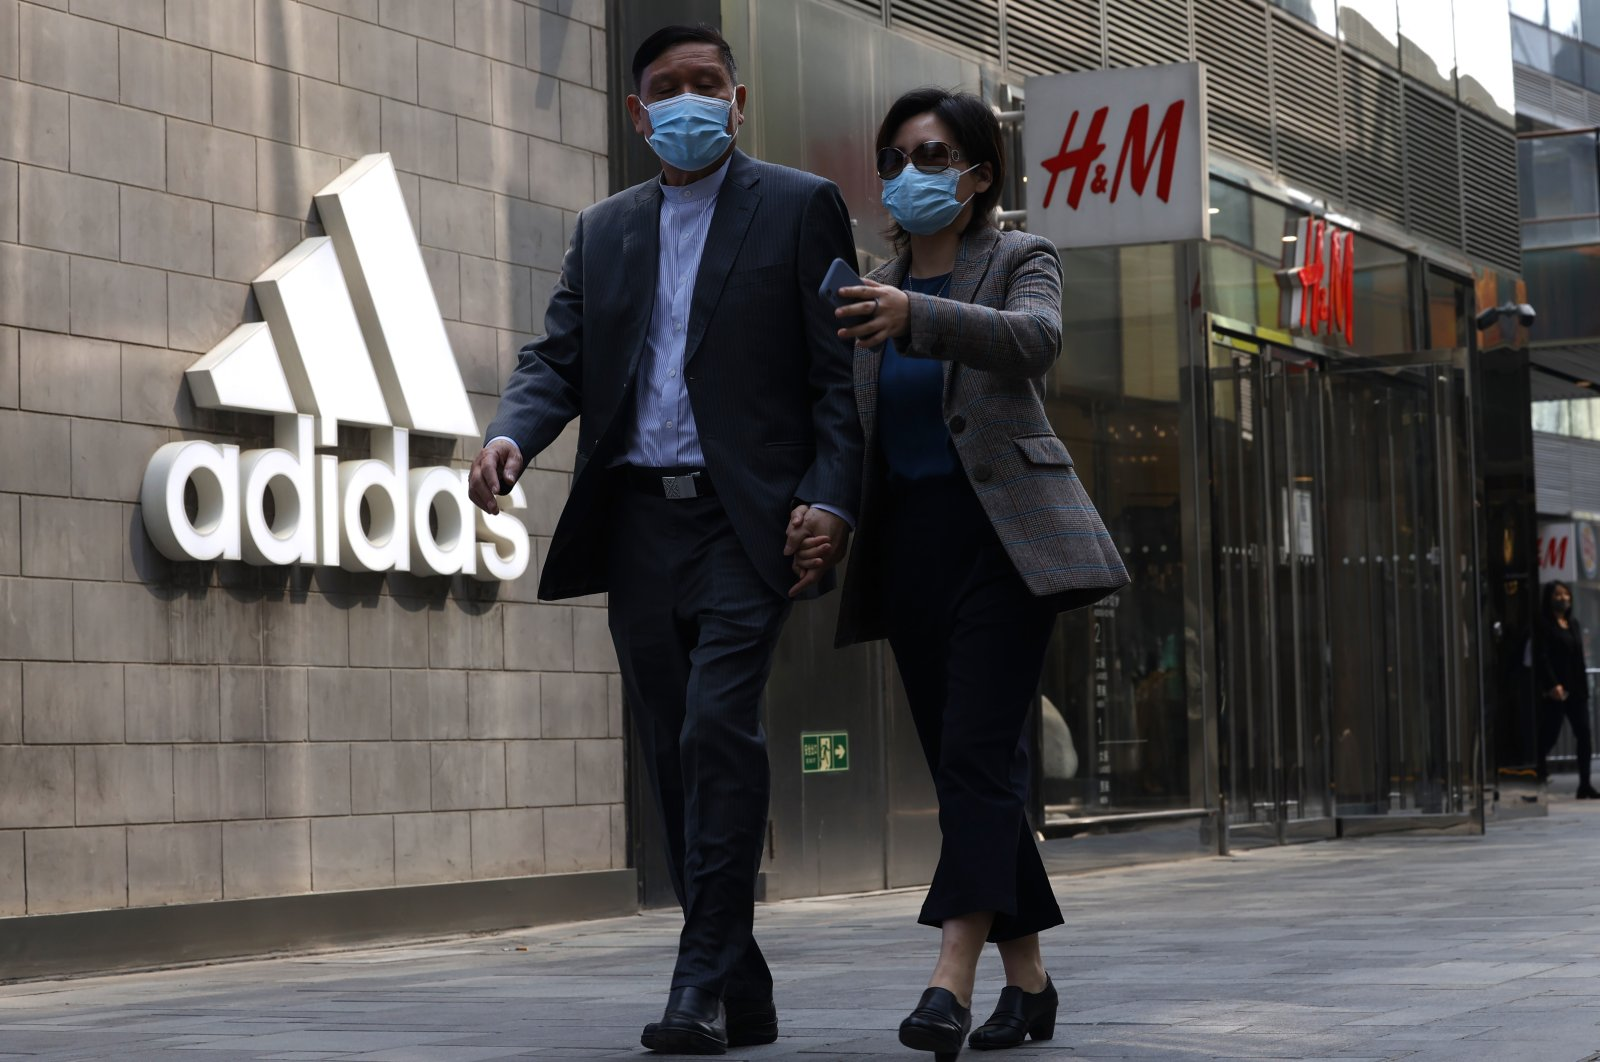 People walk by Adidas and H&M stores in Beijing, China, March 25, 2021. (AP Photo)